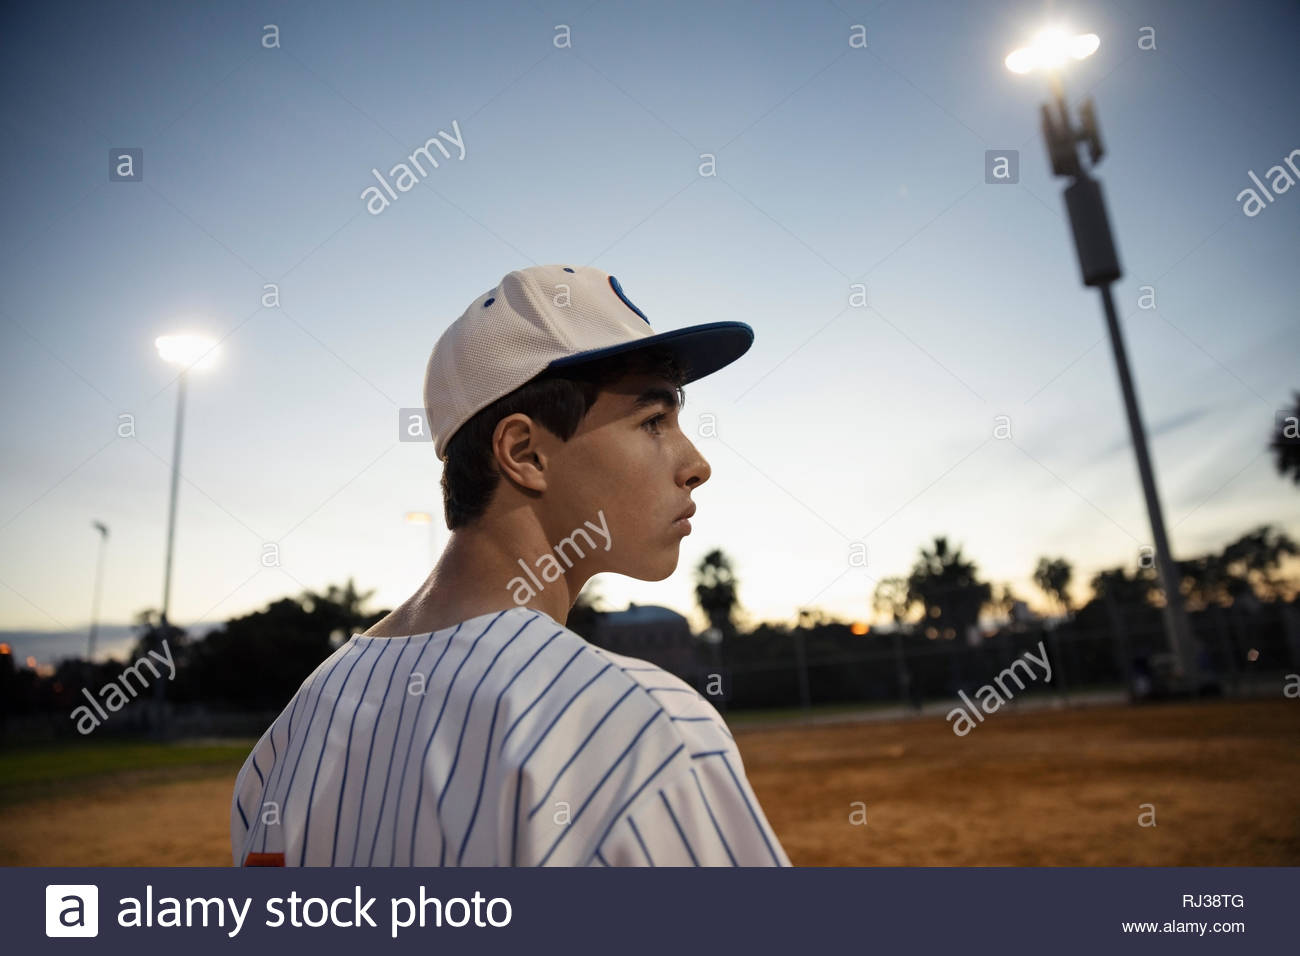 Determined Latinx baseball player on field at night - Stock Image